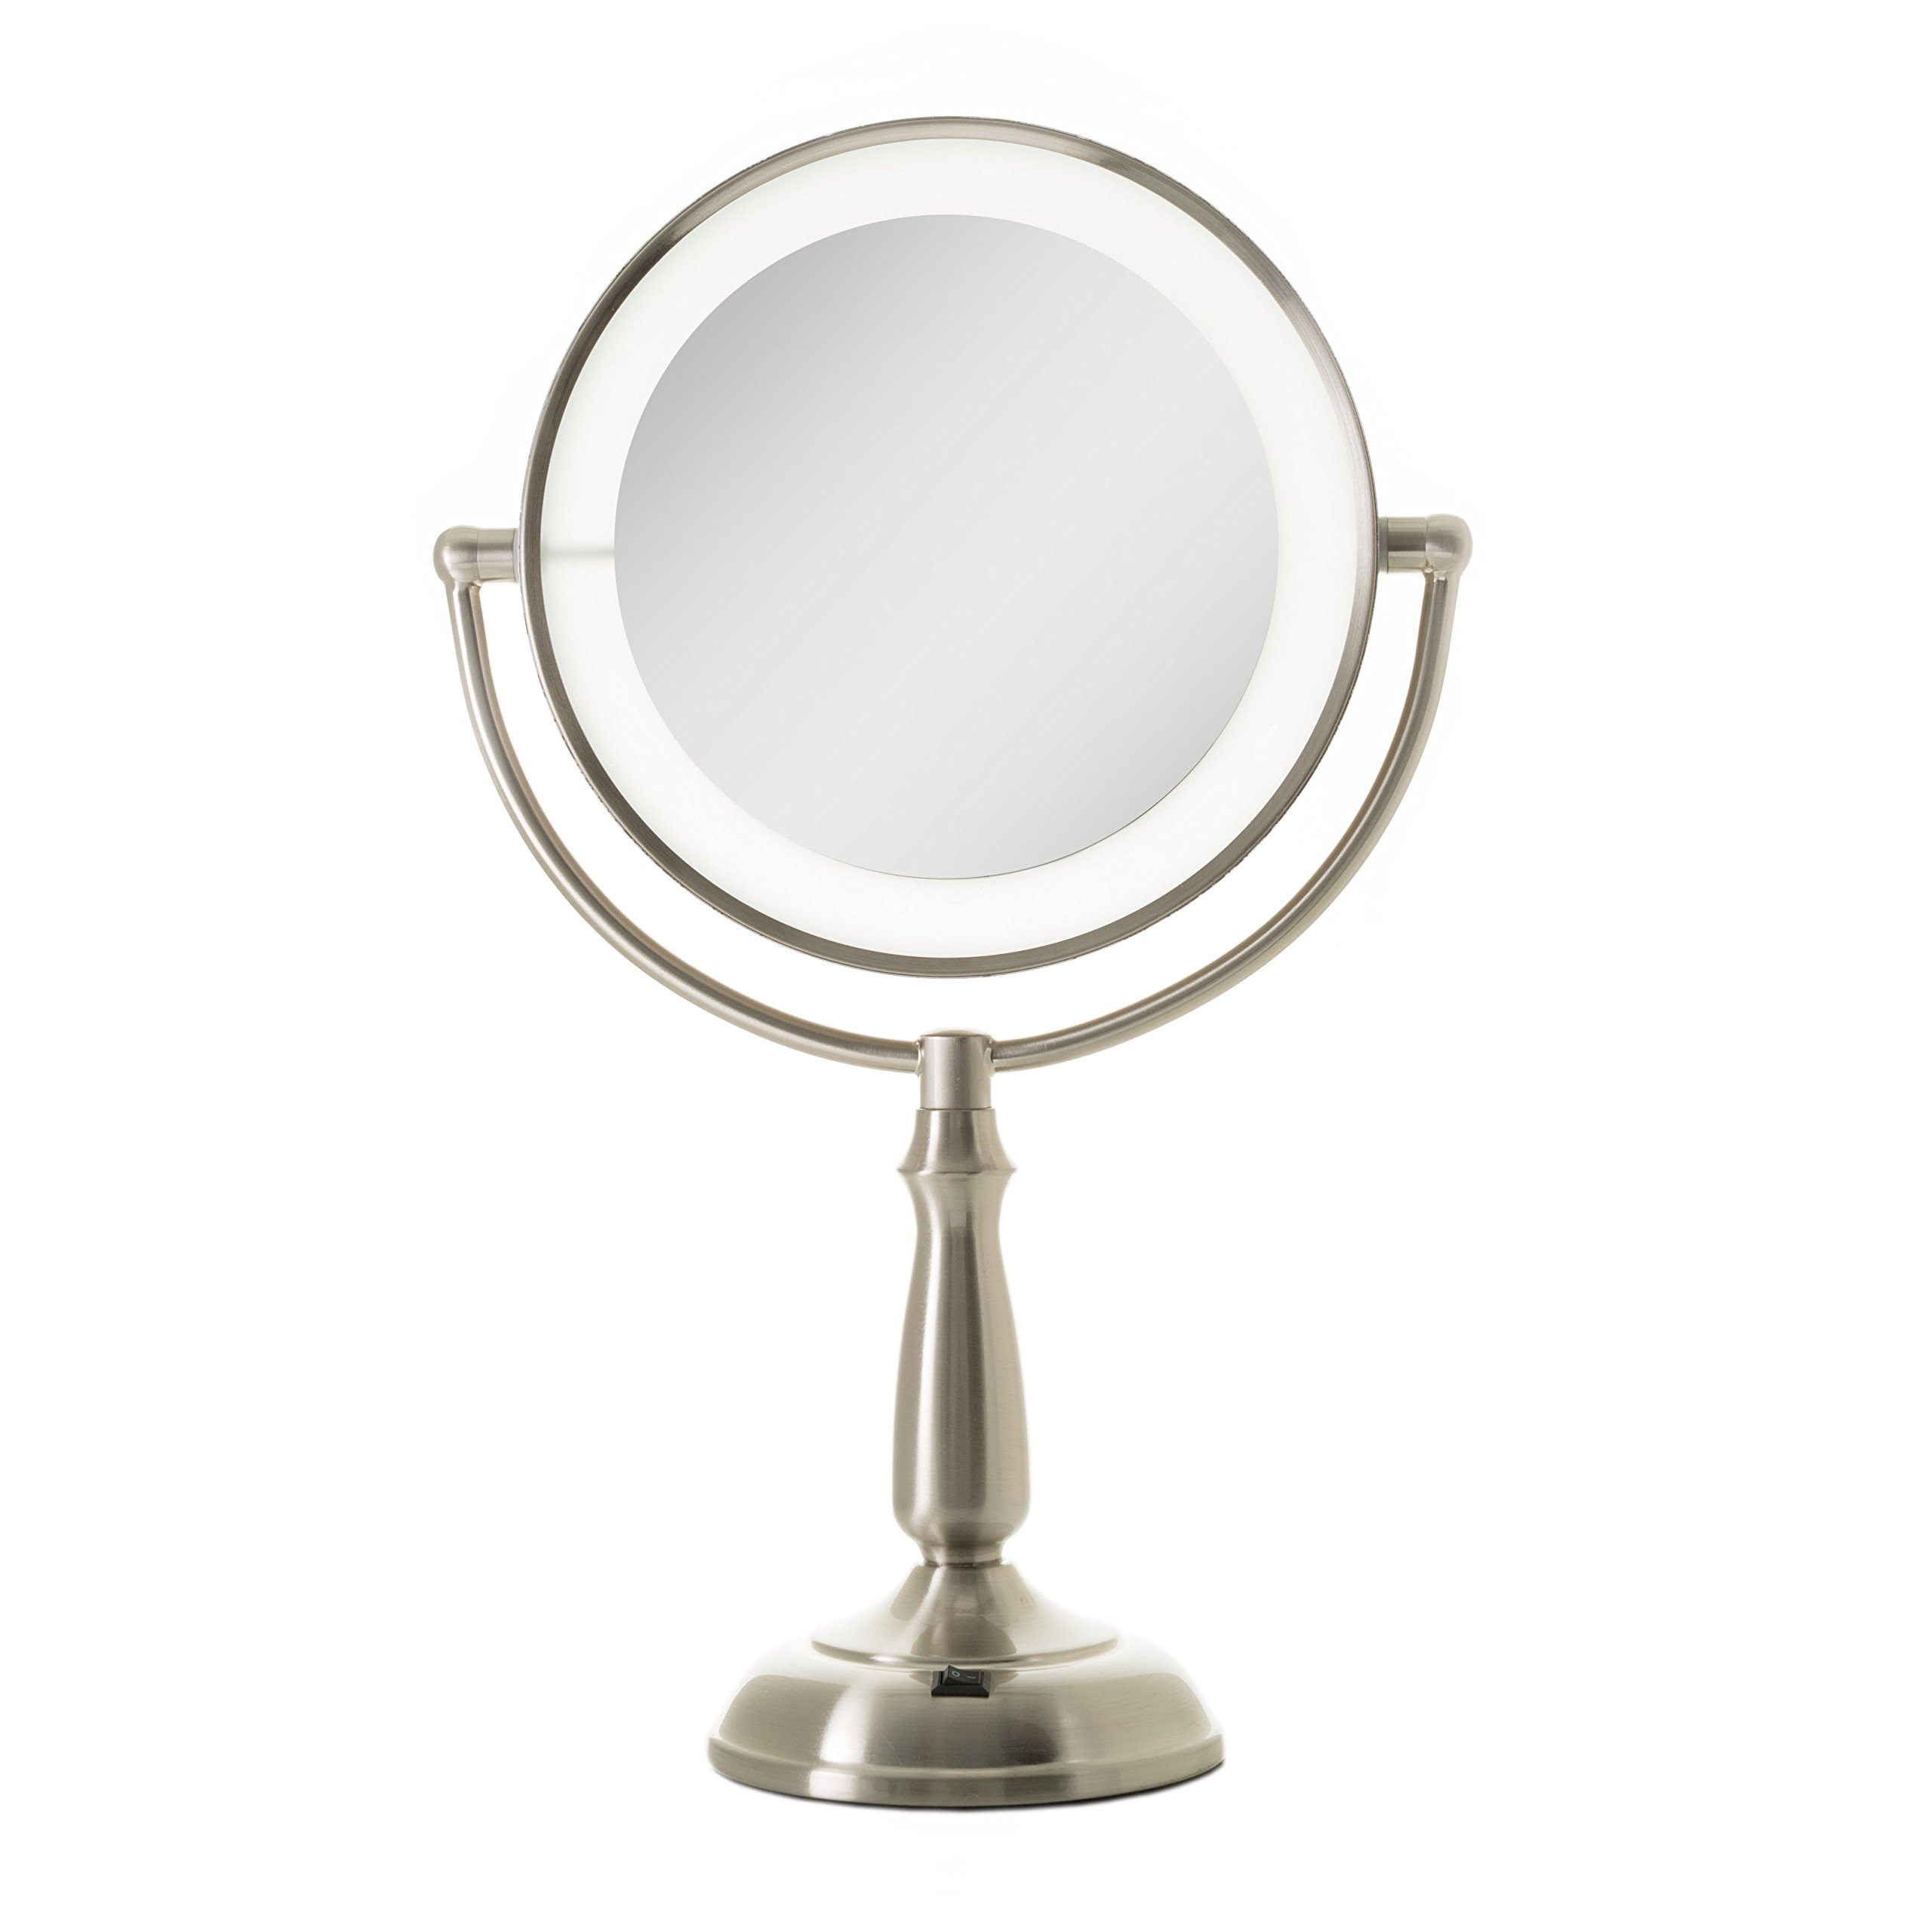 Zadro Dimmable Touch Ultra Bright Dual-Sided LED Lighted Vanity Make Up Mirror with 1X & 5X magnification in Satin Nickel Finish